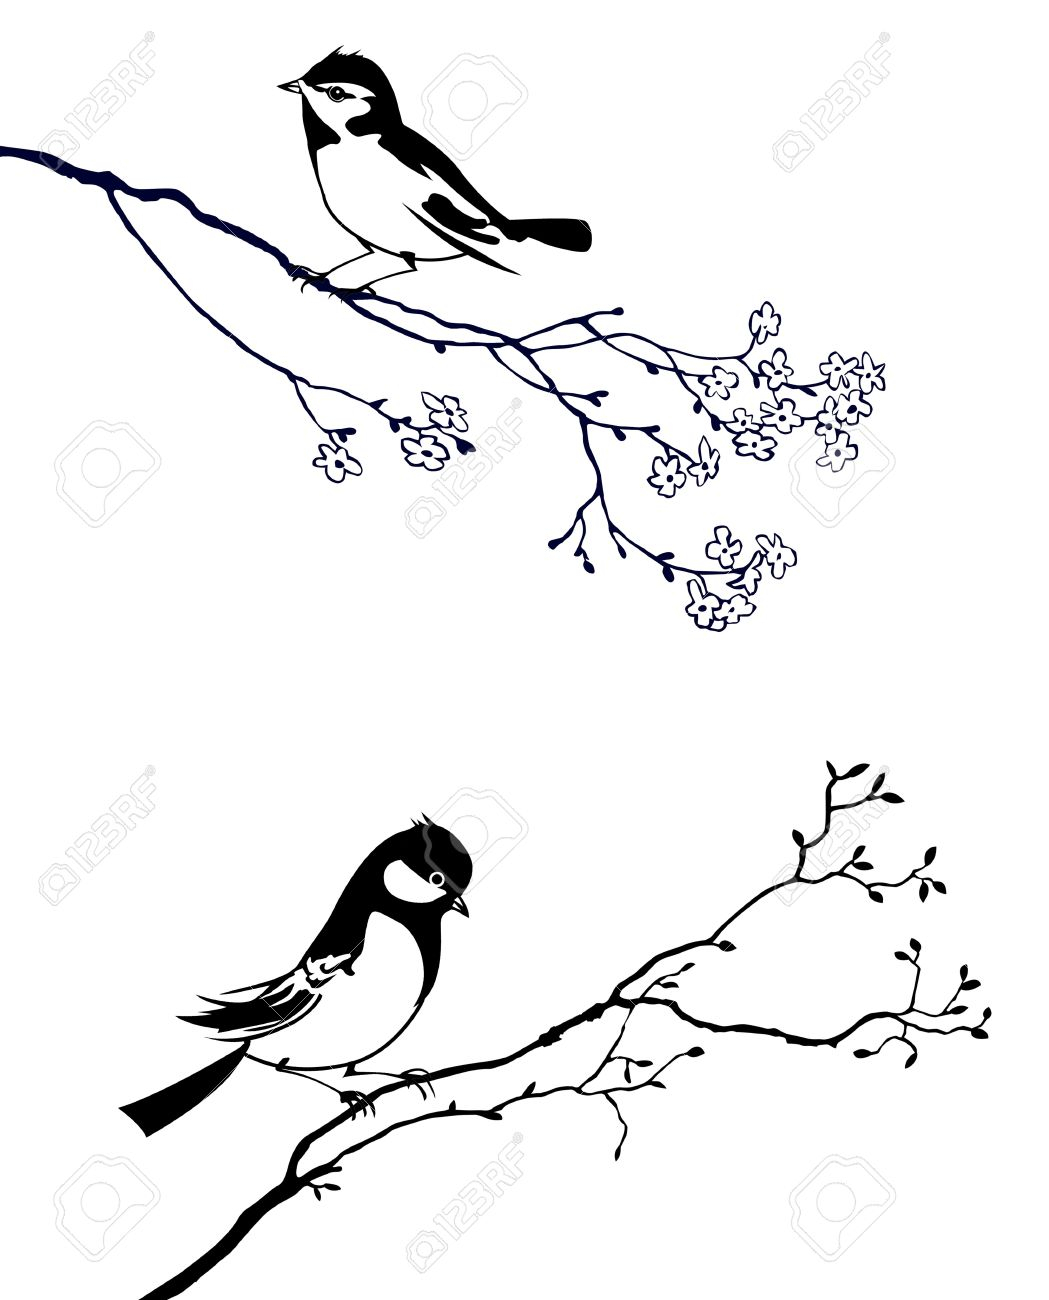 1049x1300 Bird On Tree Drawing Silhouette Of The Bird On Branch Tree Royalty